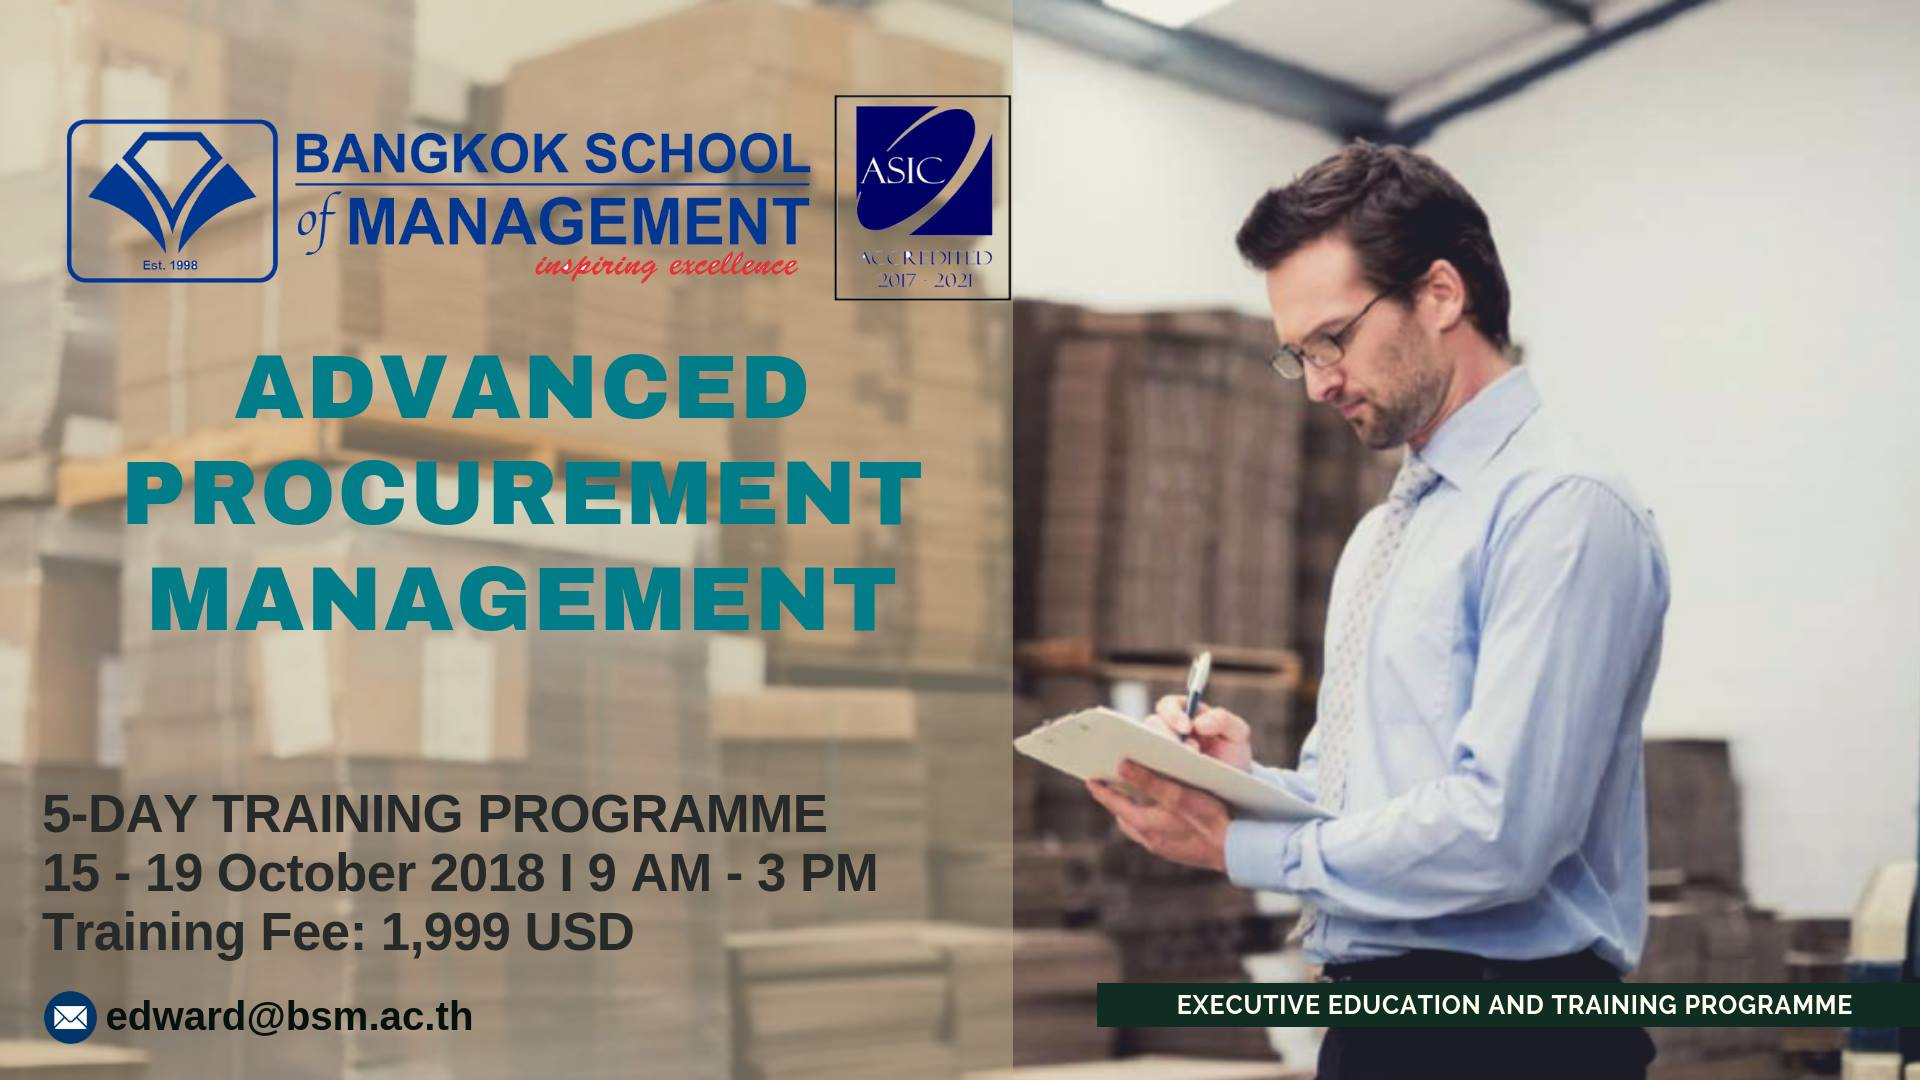 Date: October 15 &#8211; 19, 2018<br></br>Training Programme: Advanced Procurement Management